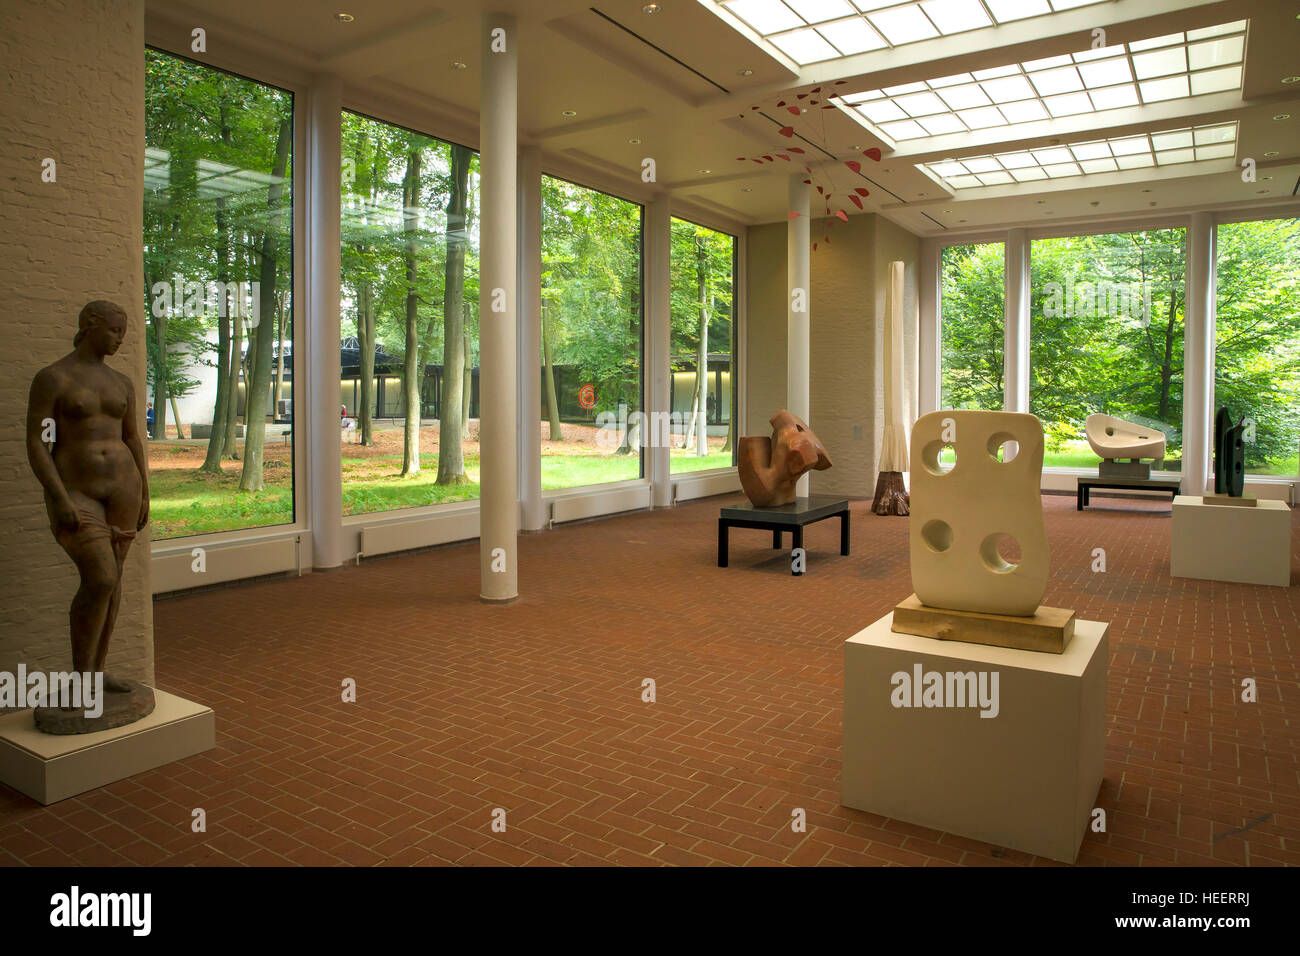 Interior of Kroller-Muller Museum, Hoge Veluwe National Park, Otterlo, Netherlands, Europe - Stock Image